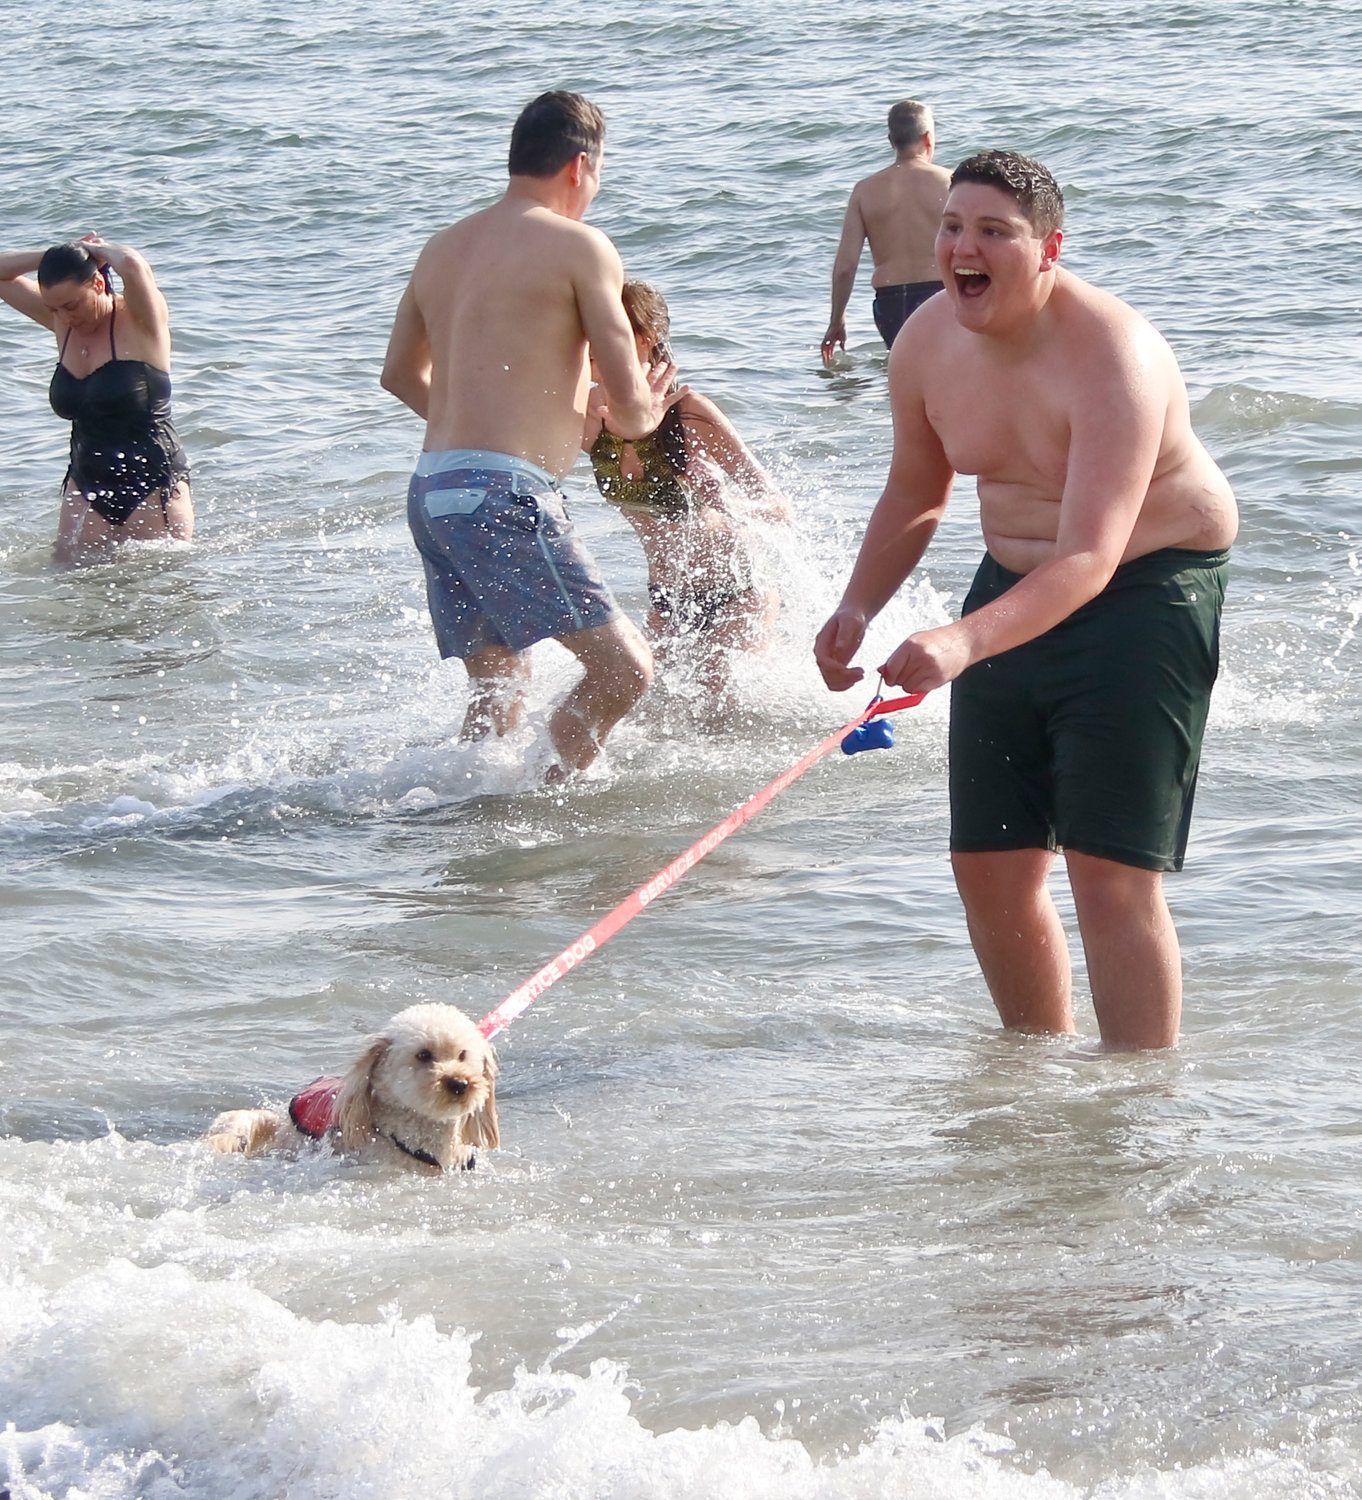 Juston Cornell, also of Long Beach, ran into the water with service dog Peaches.